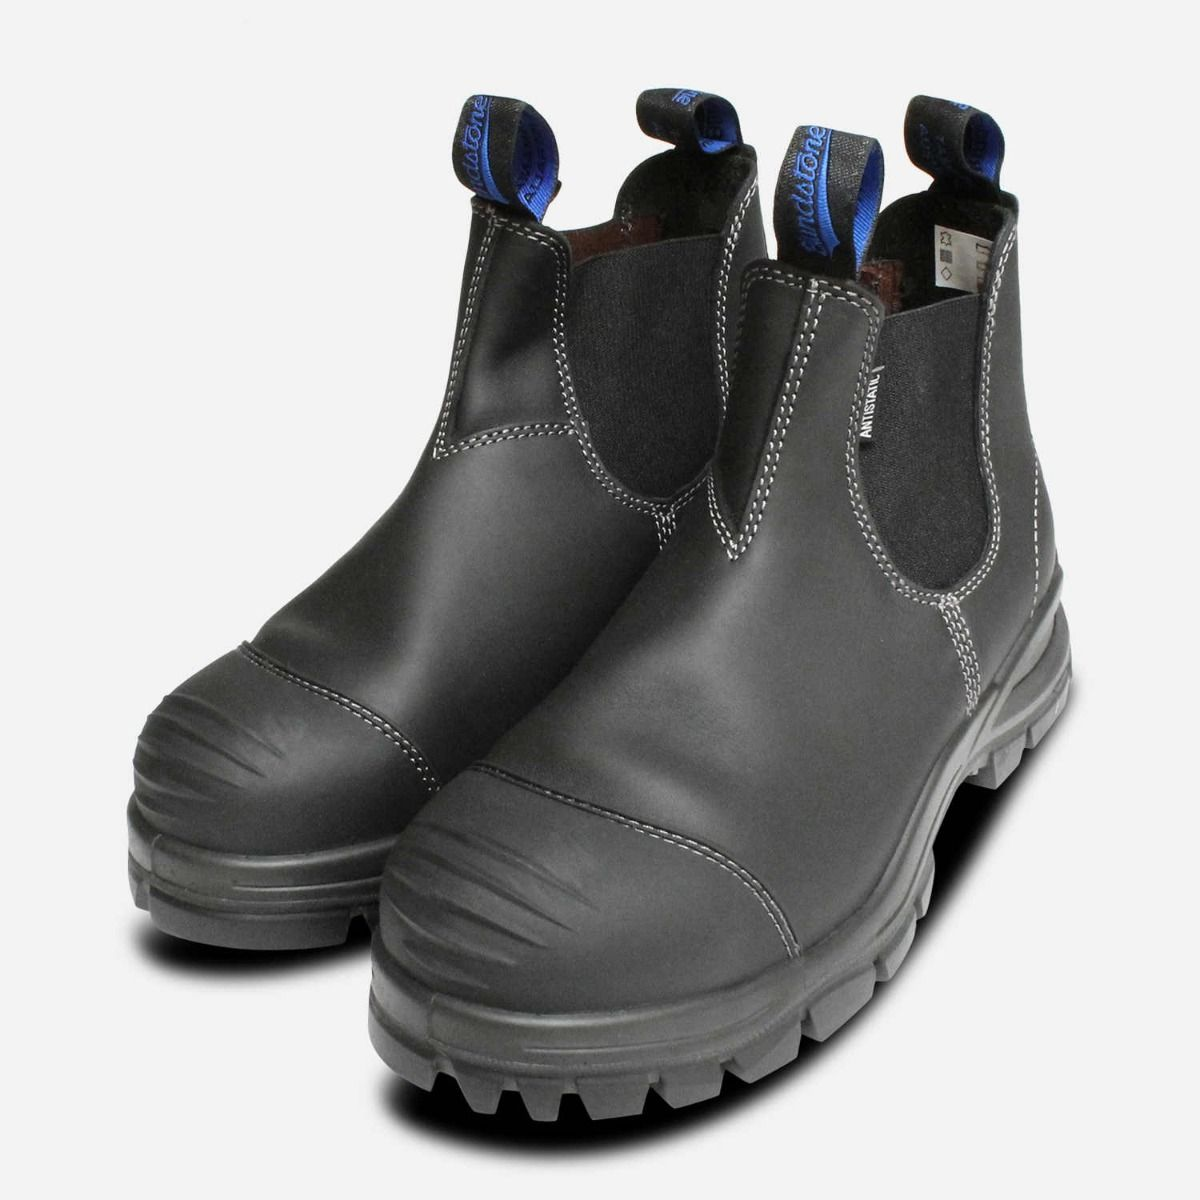 Blundstone 910 Steel Toe Safety Boots